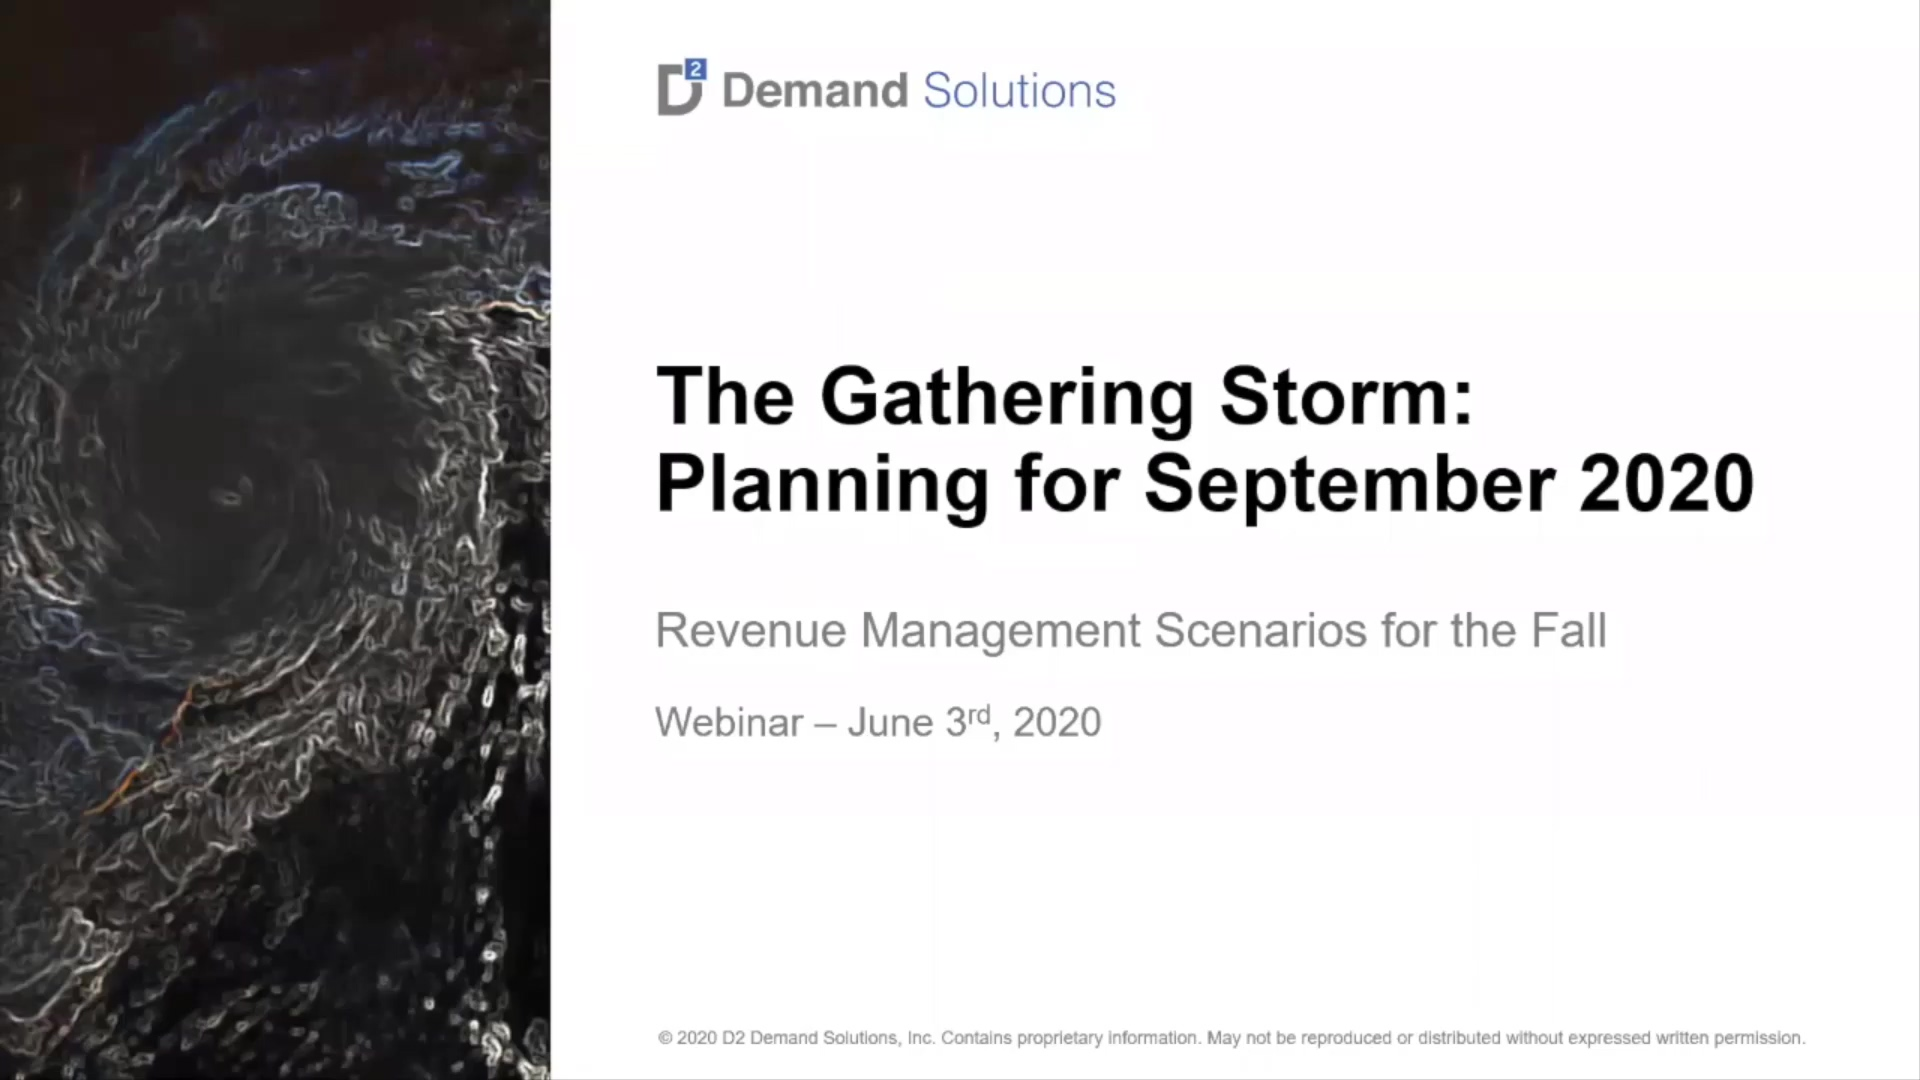 Webinar - The Gathering Storm